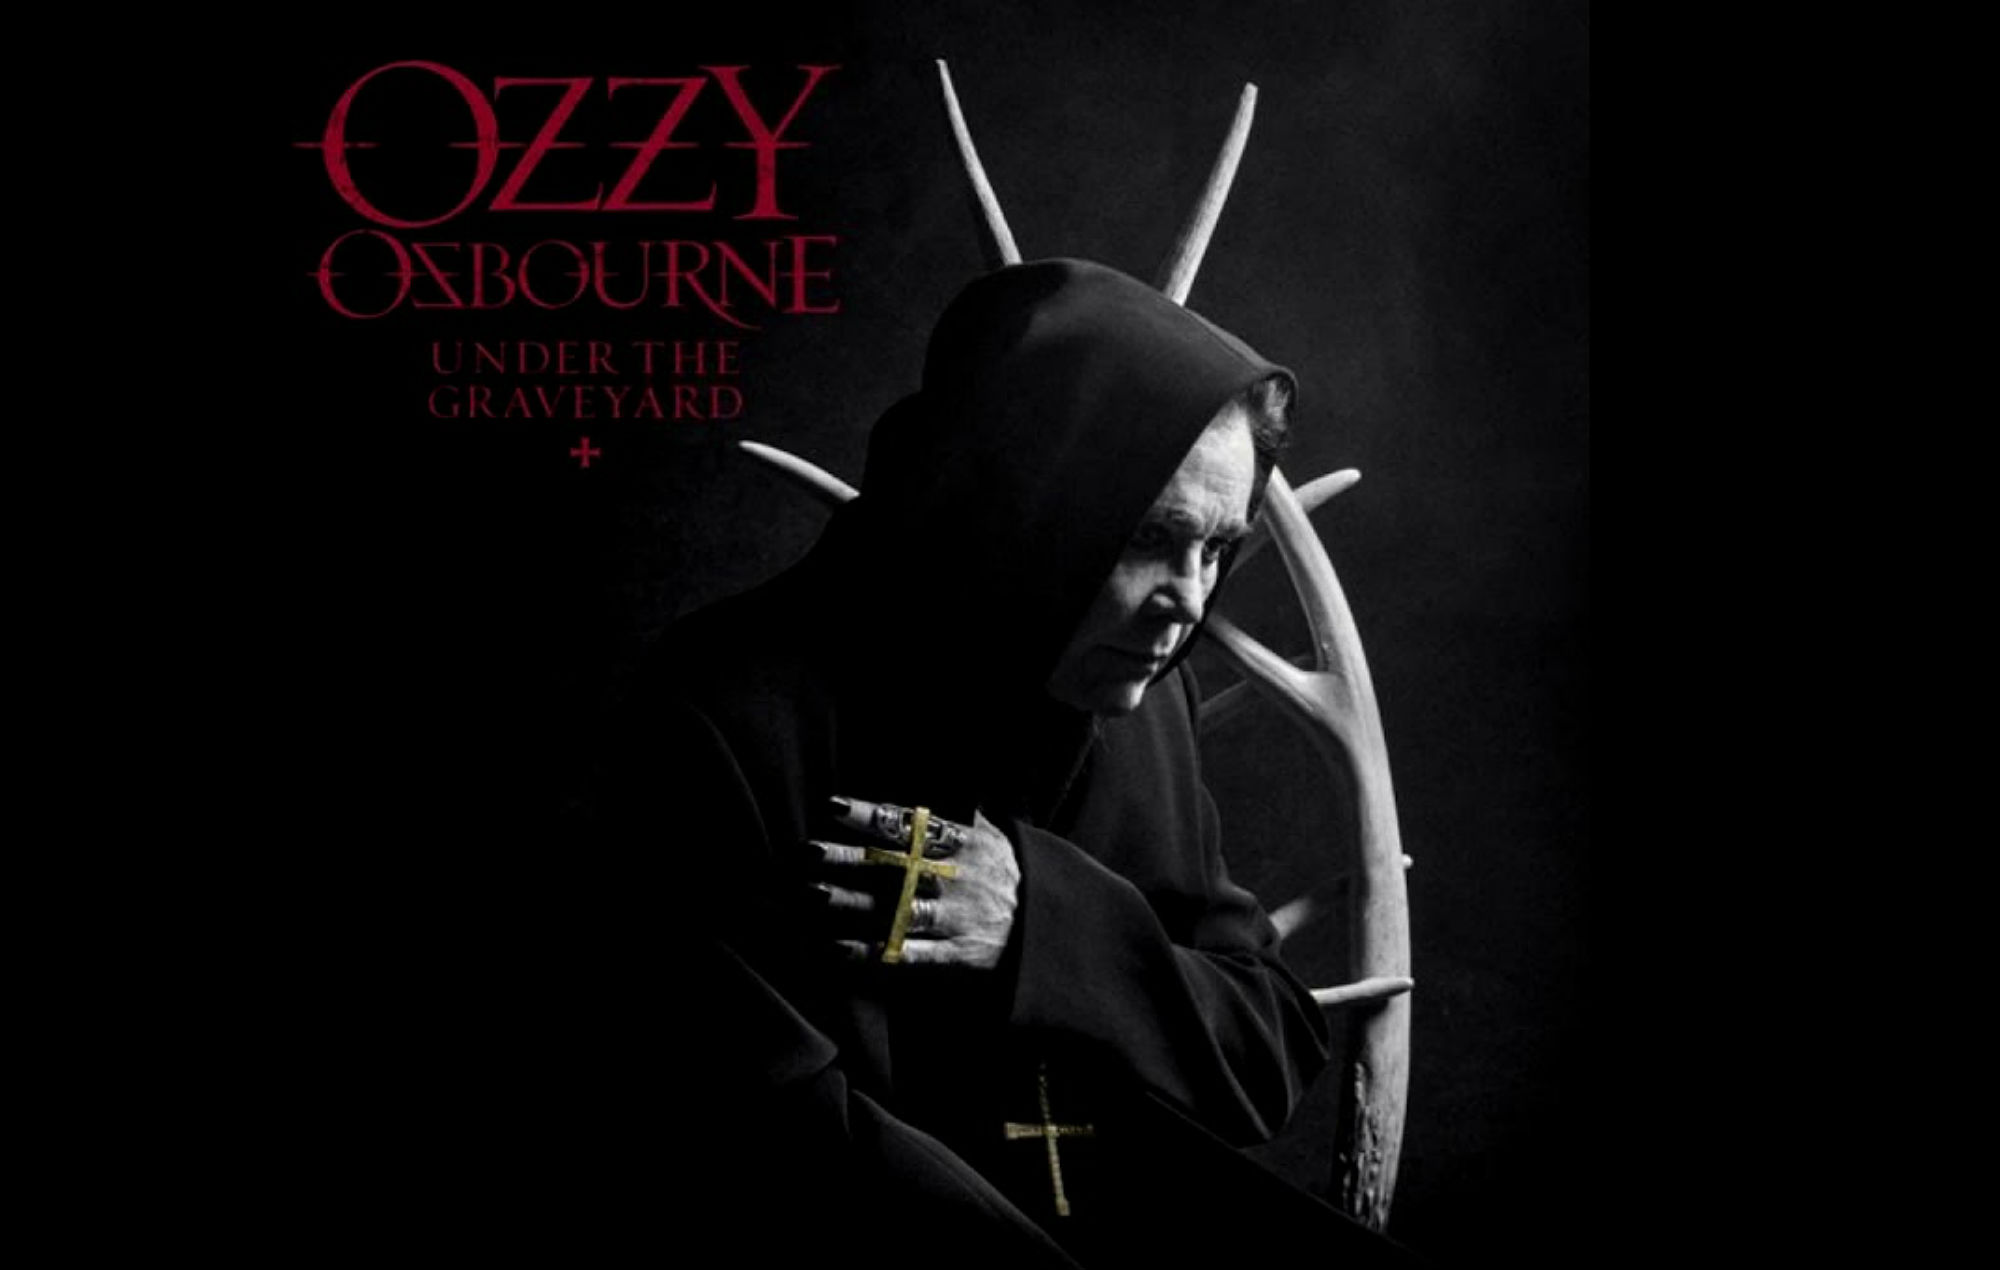 Ozzy Osbourne faces up to mortality on new single 'Under The Graveyard' – listen